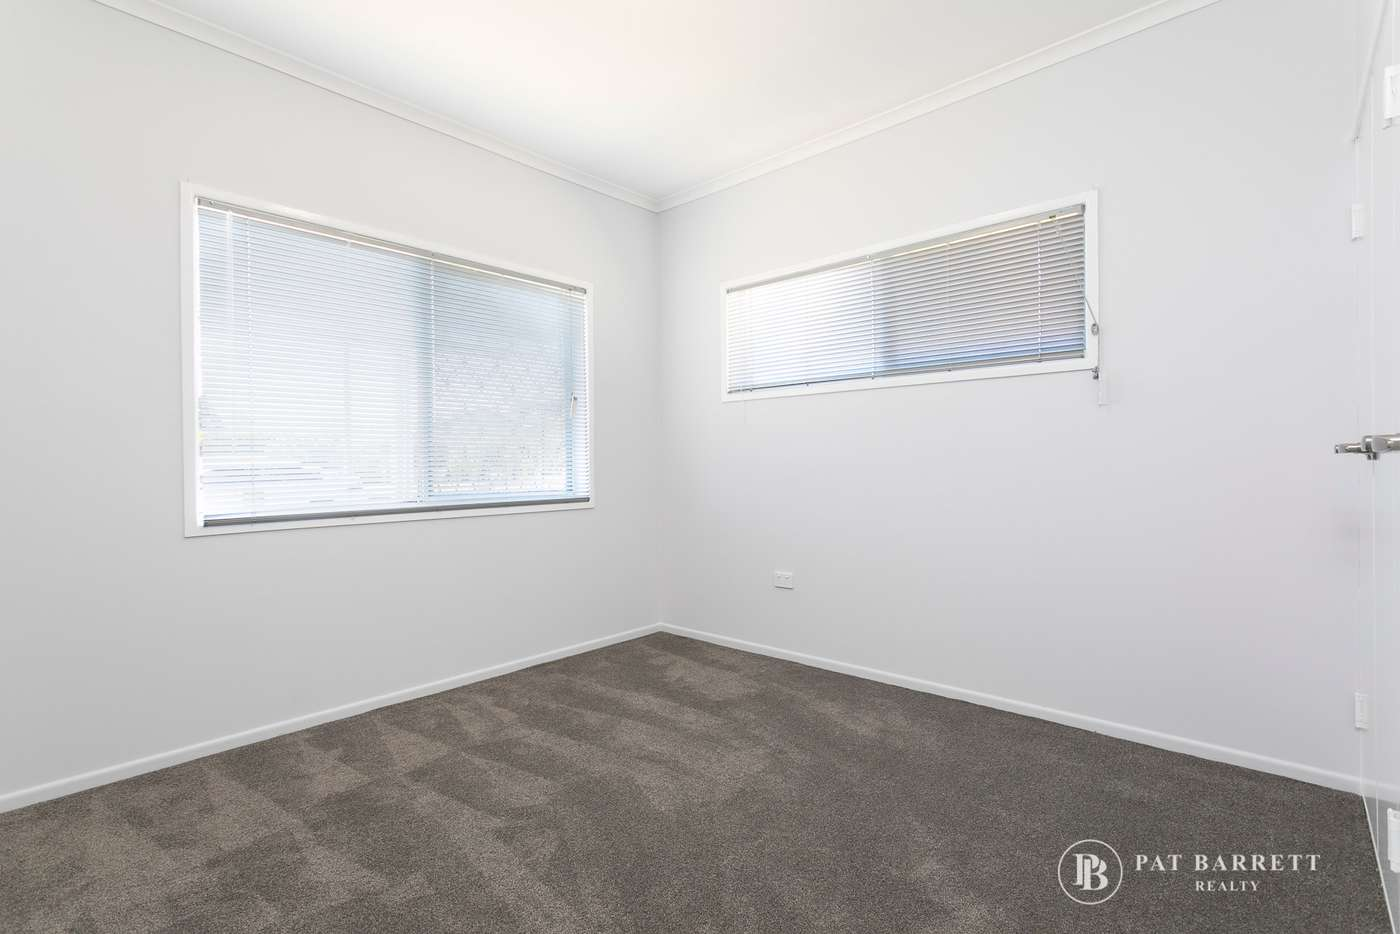 Sixth view of Homely house listing, 94 Valantine Road, Birkdale QLD 4159